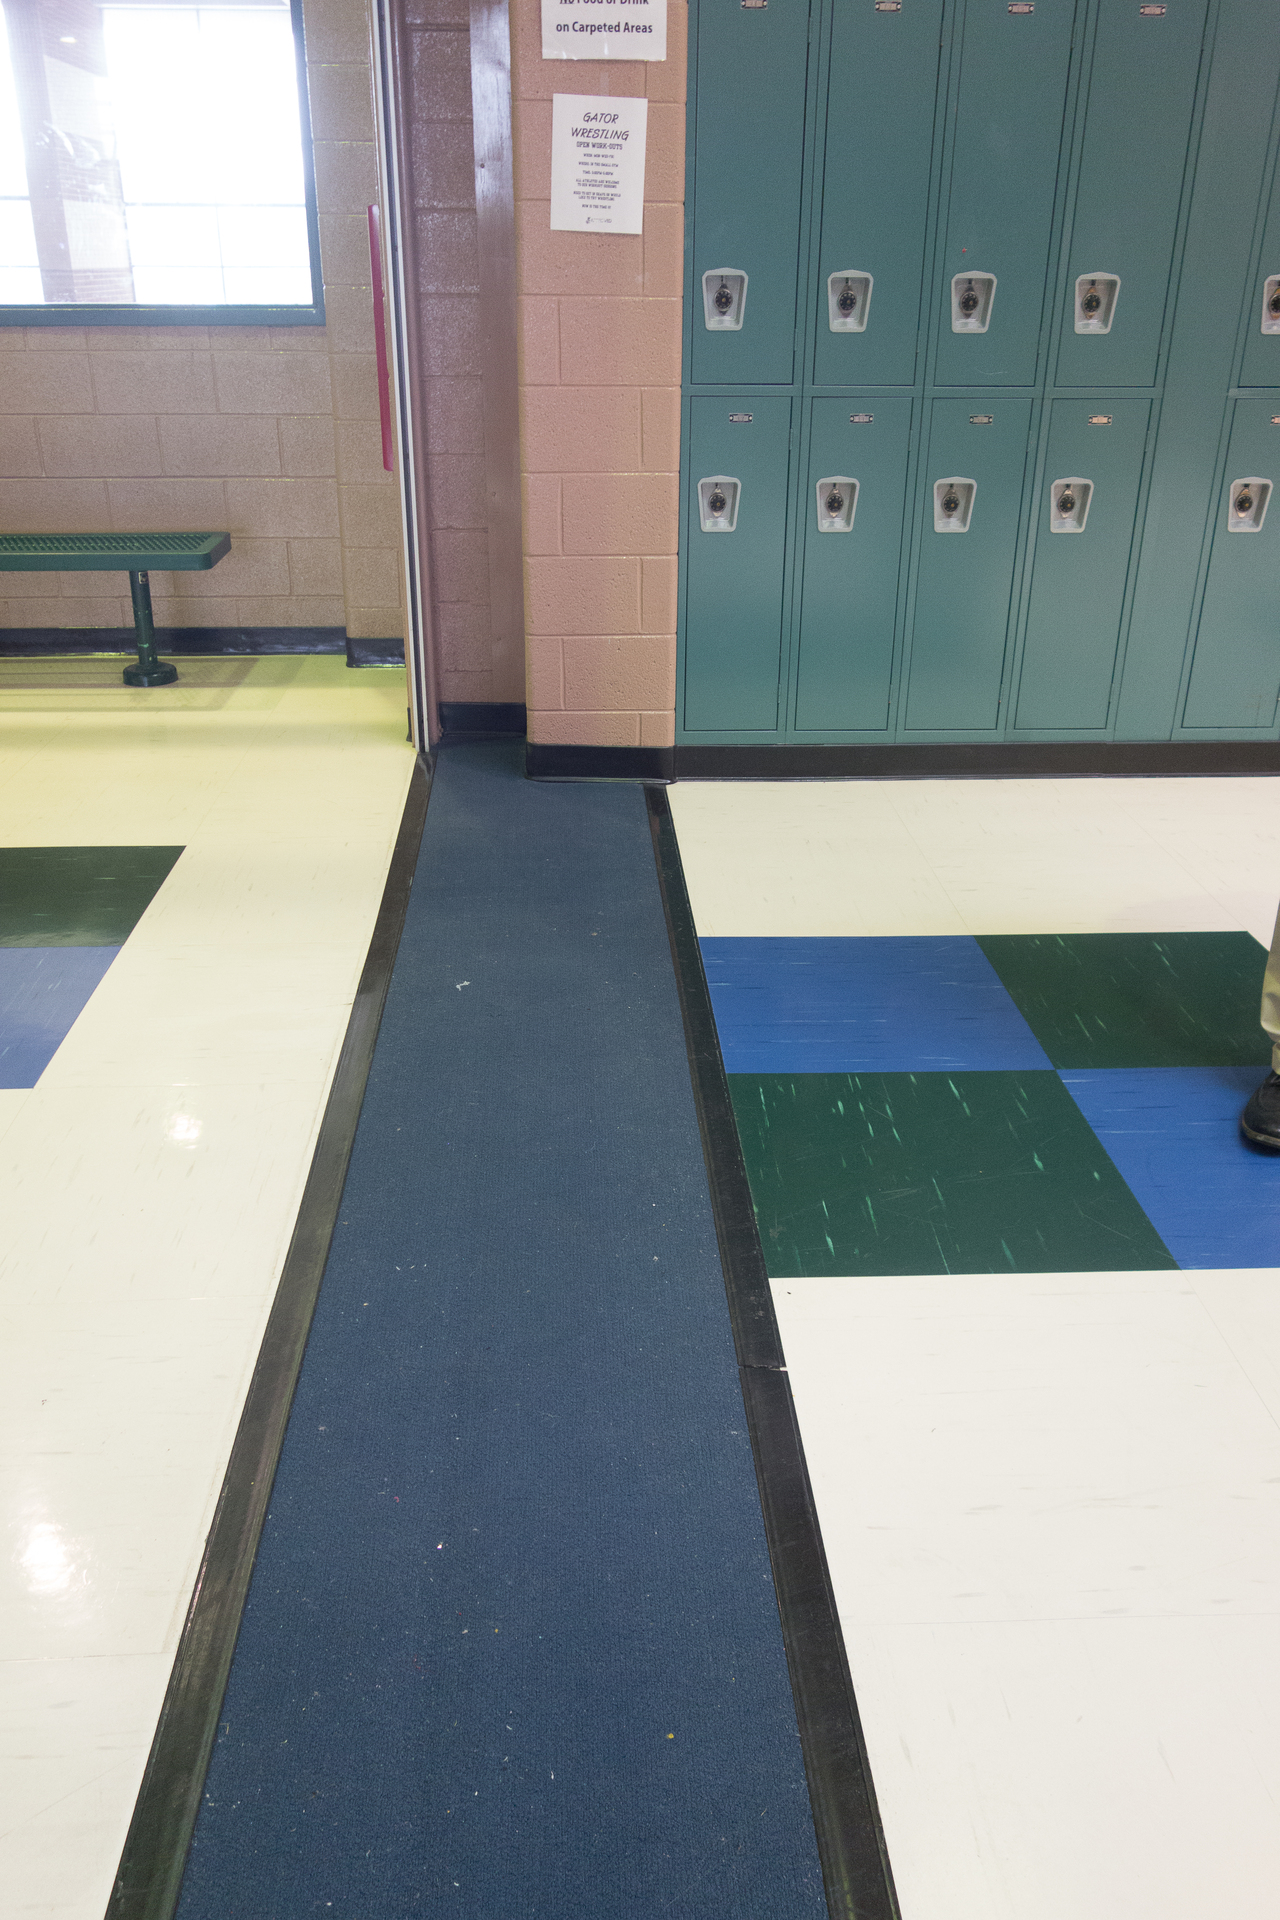 Mix and match tile faces to showcase your branding colors. Our tiles are perfect for high-traffic areas because its excellent dimensional stability resists shrinkage, reducing seam gaps where bacteria might hide, which is an excellent feature for schools.